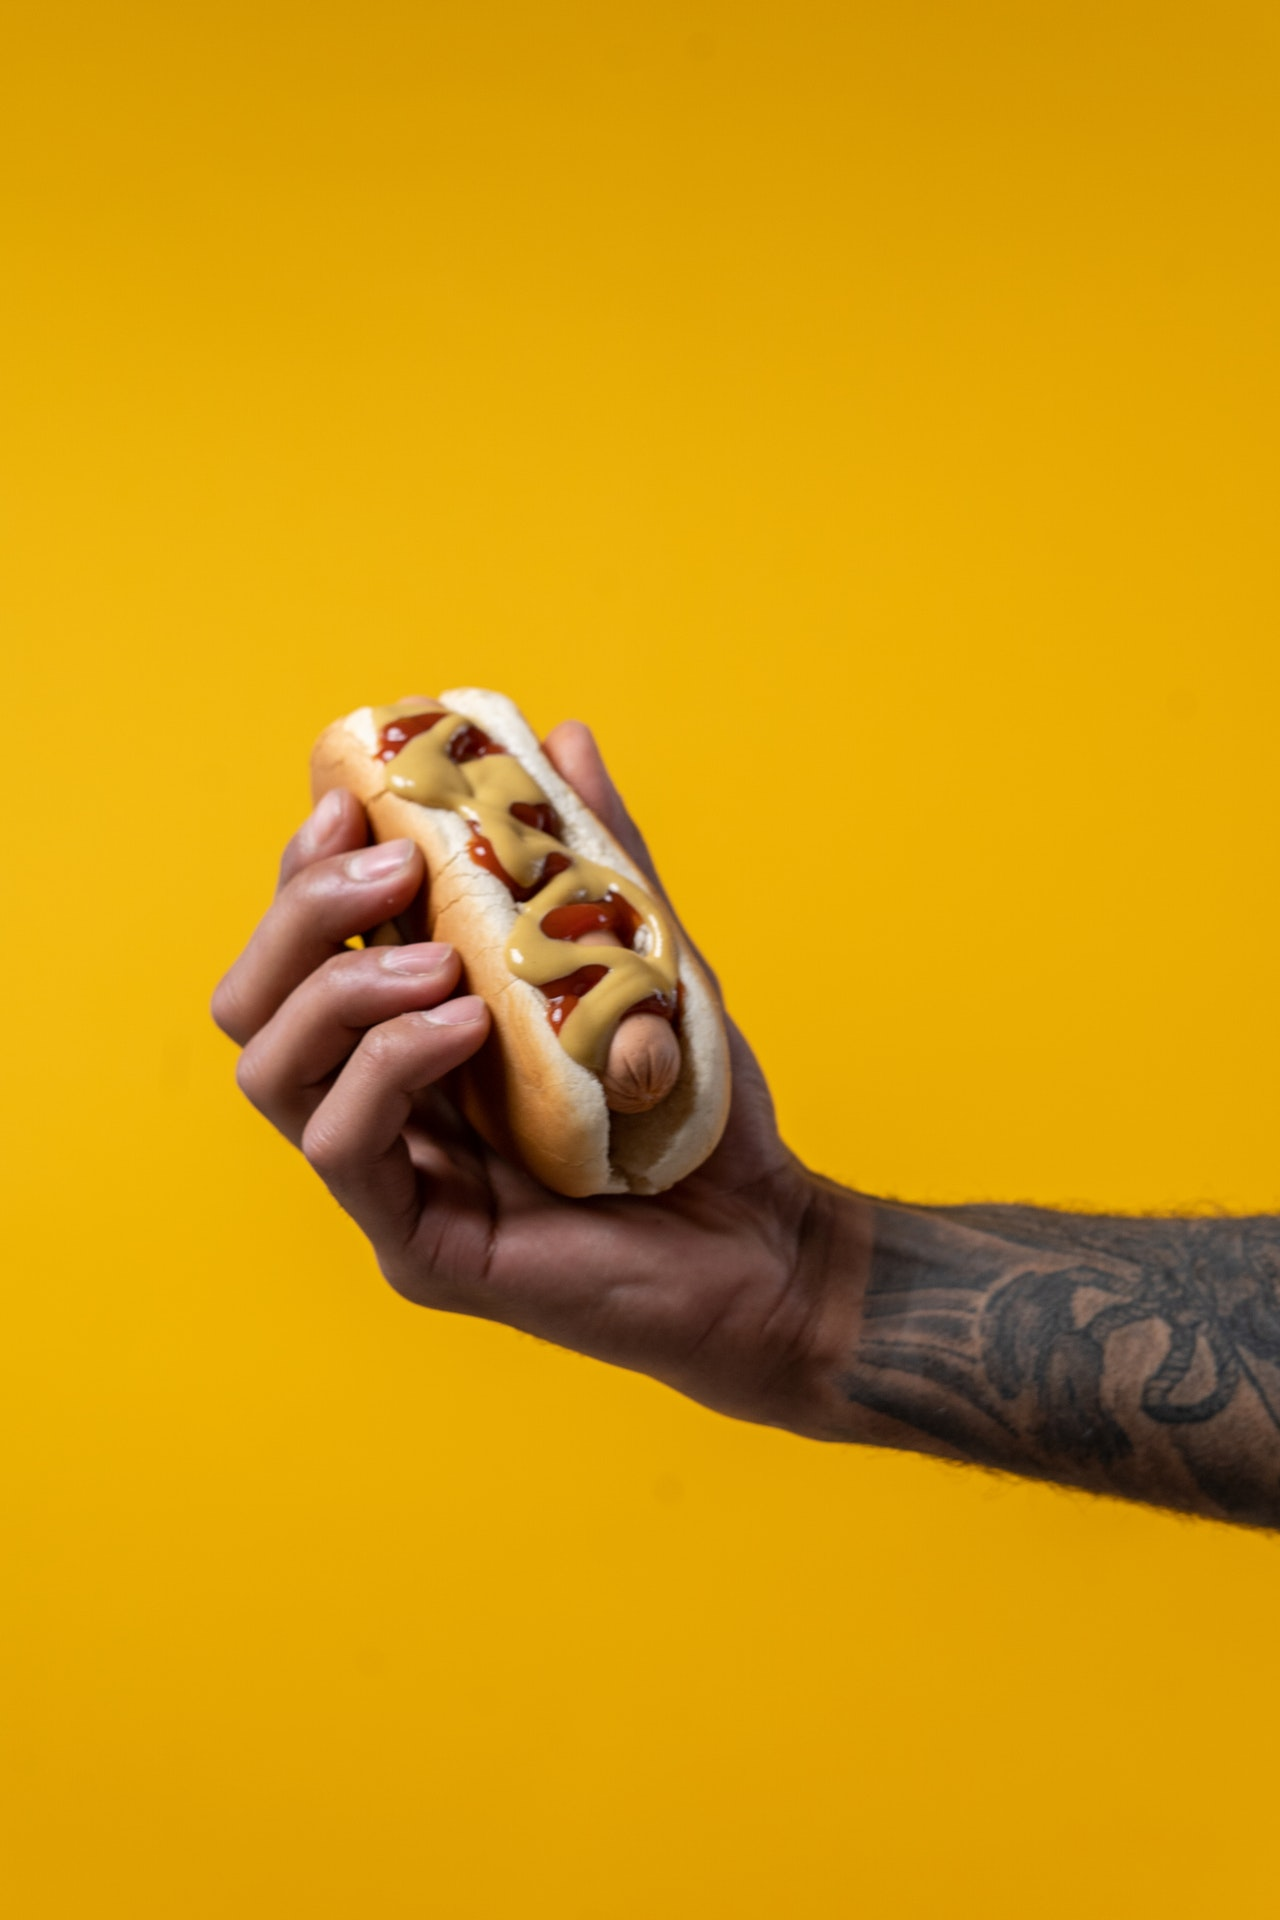 A hand holds a hotdog with mustard and other toppings against a yellow background. Photo courtesy of Cottonbro on Pexels.